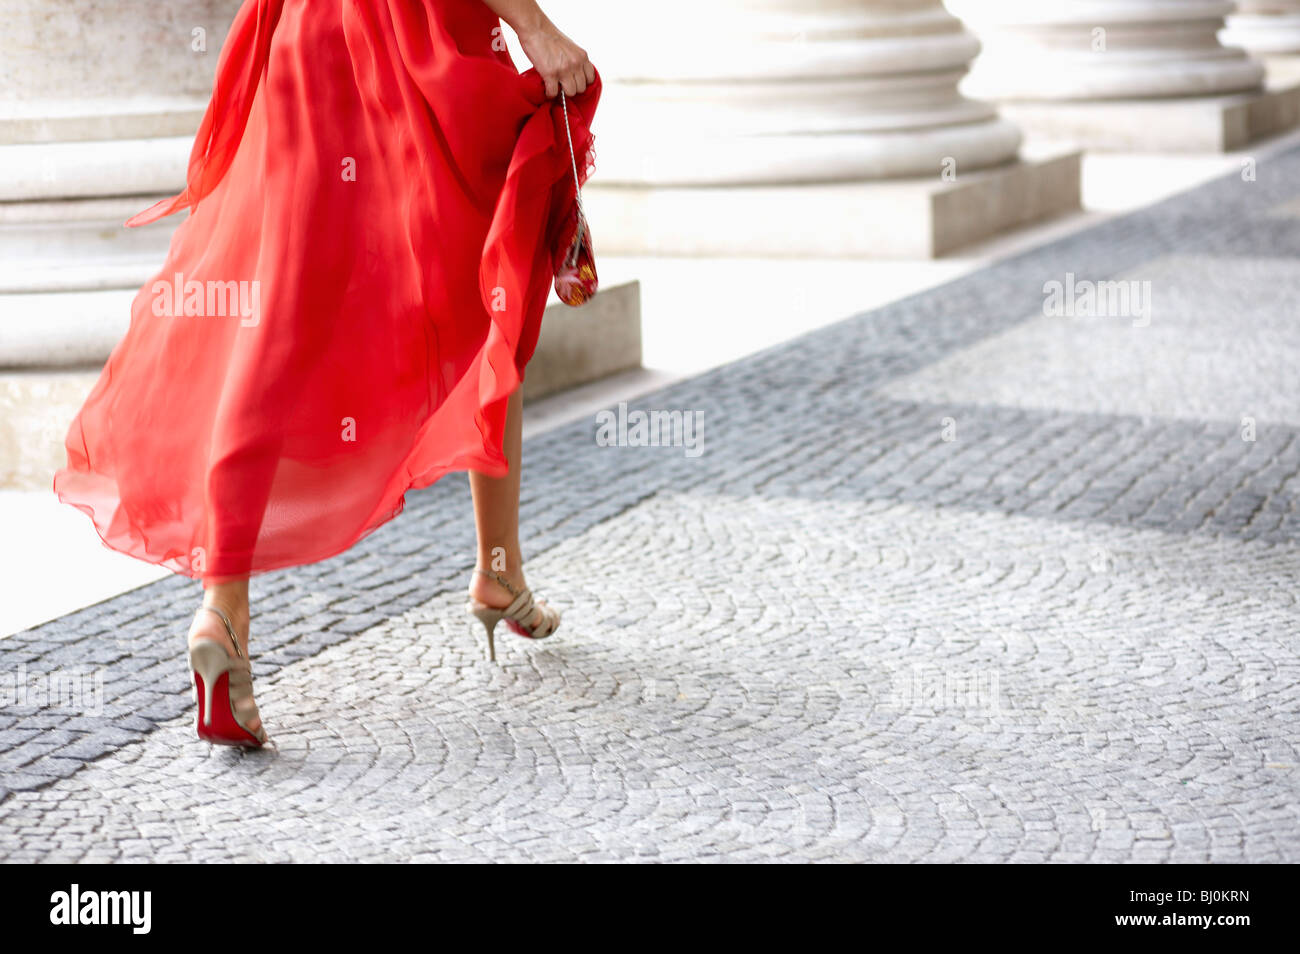 detail of young woman in red dress running through arcades of theatre - Stock Image